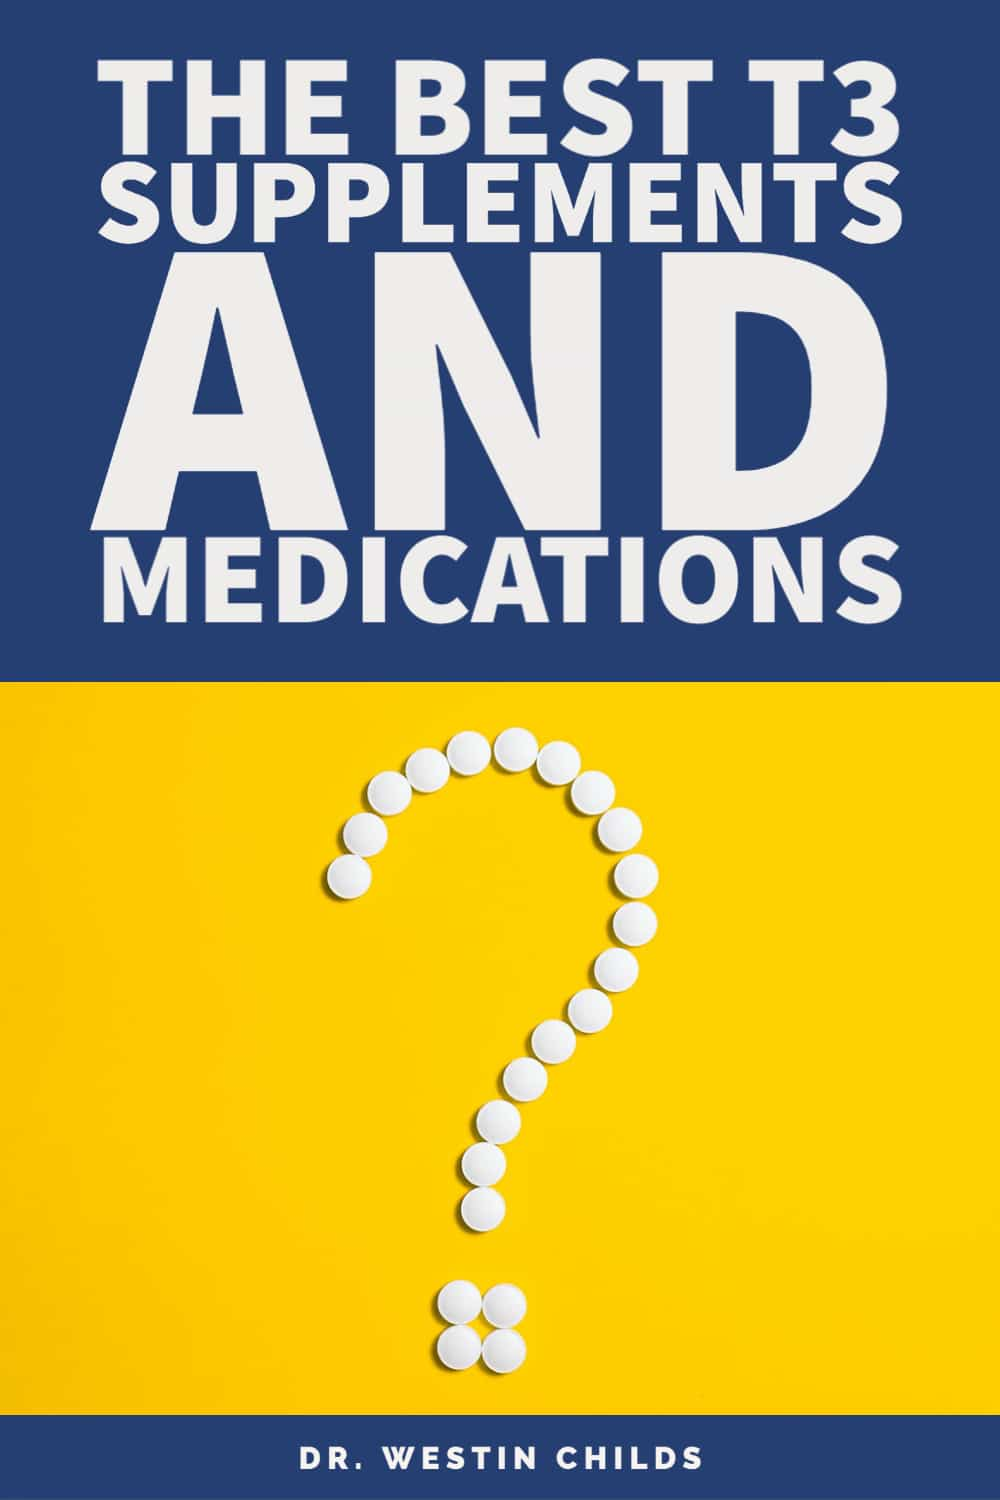 t3 supplements and medications that actually work